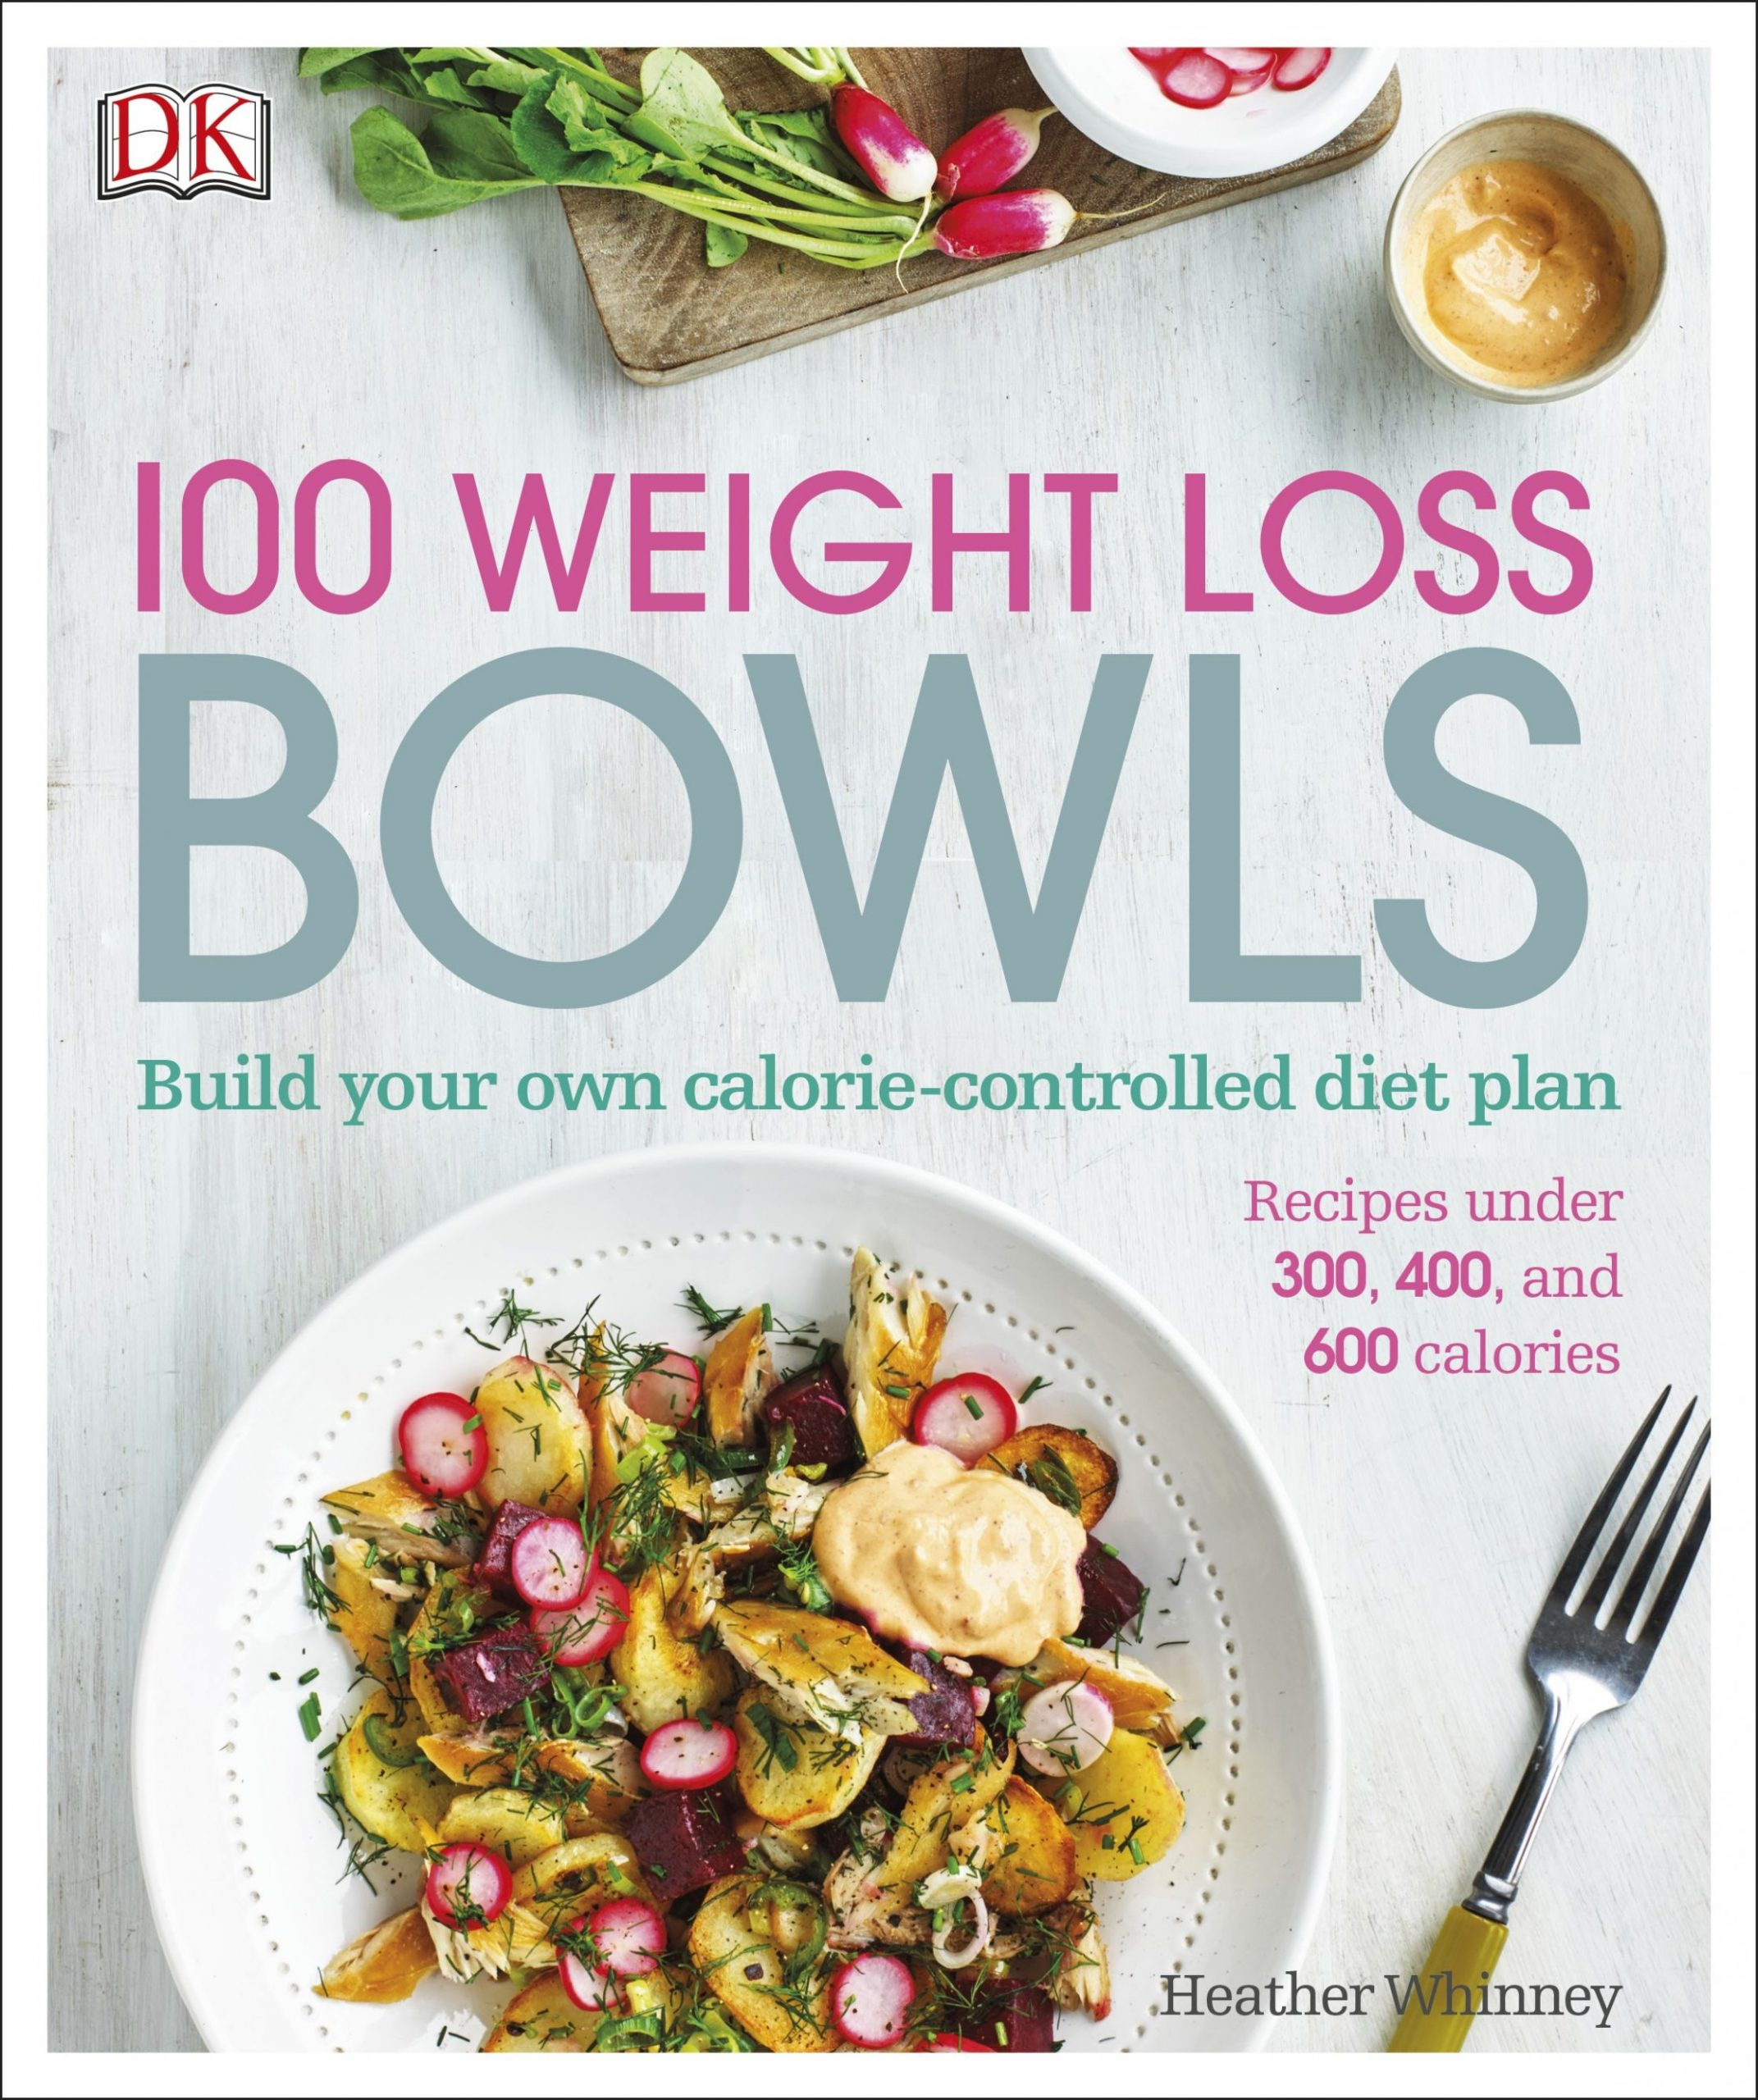 10 Weight Loss Bowls by DK - Penguin Books Australia